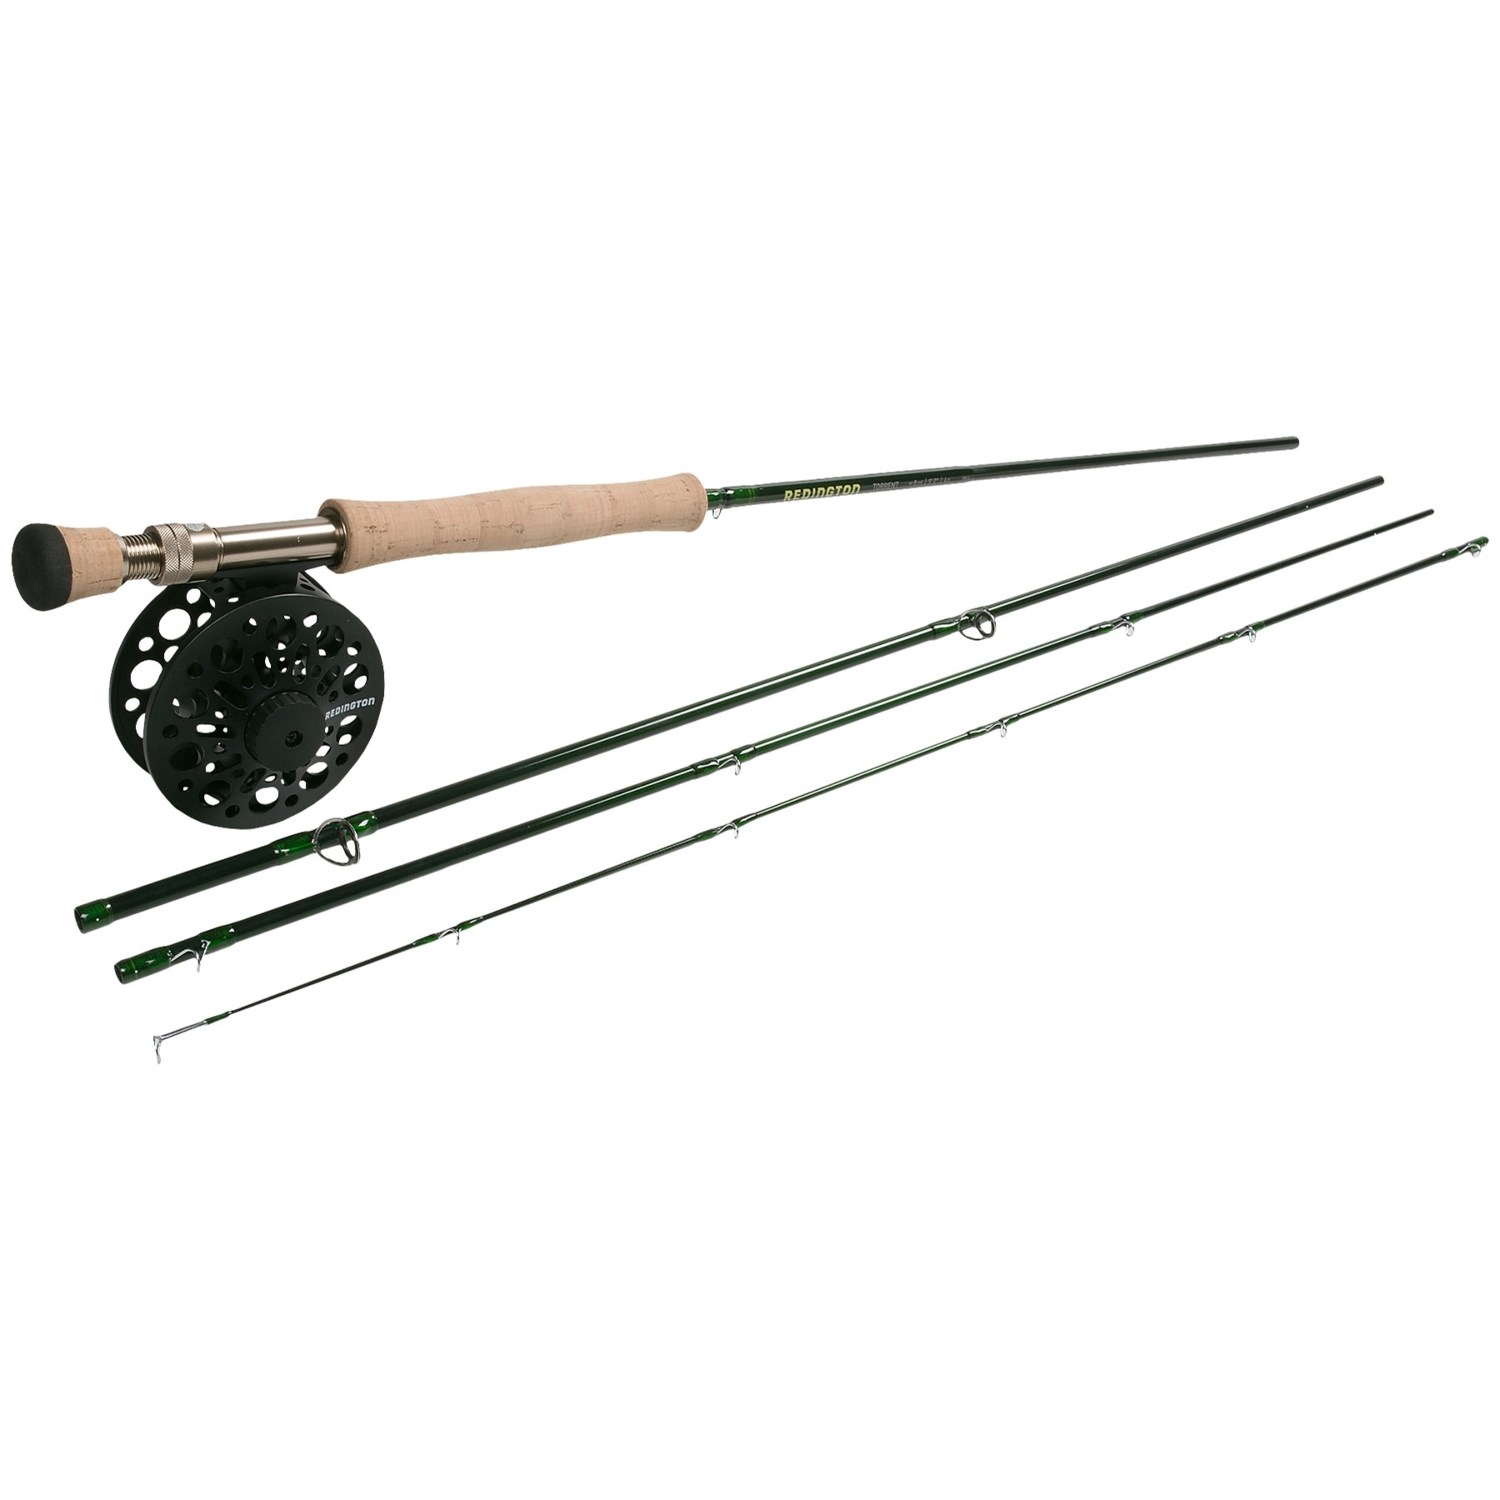 Redington torrent fly fishing combo 4 piece rod with for Fly fishing rod and reel combo